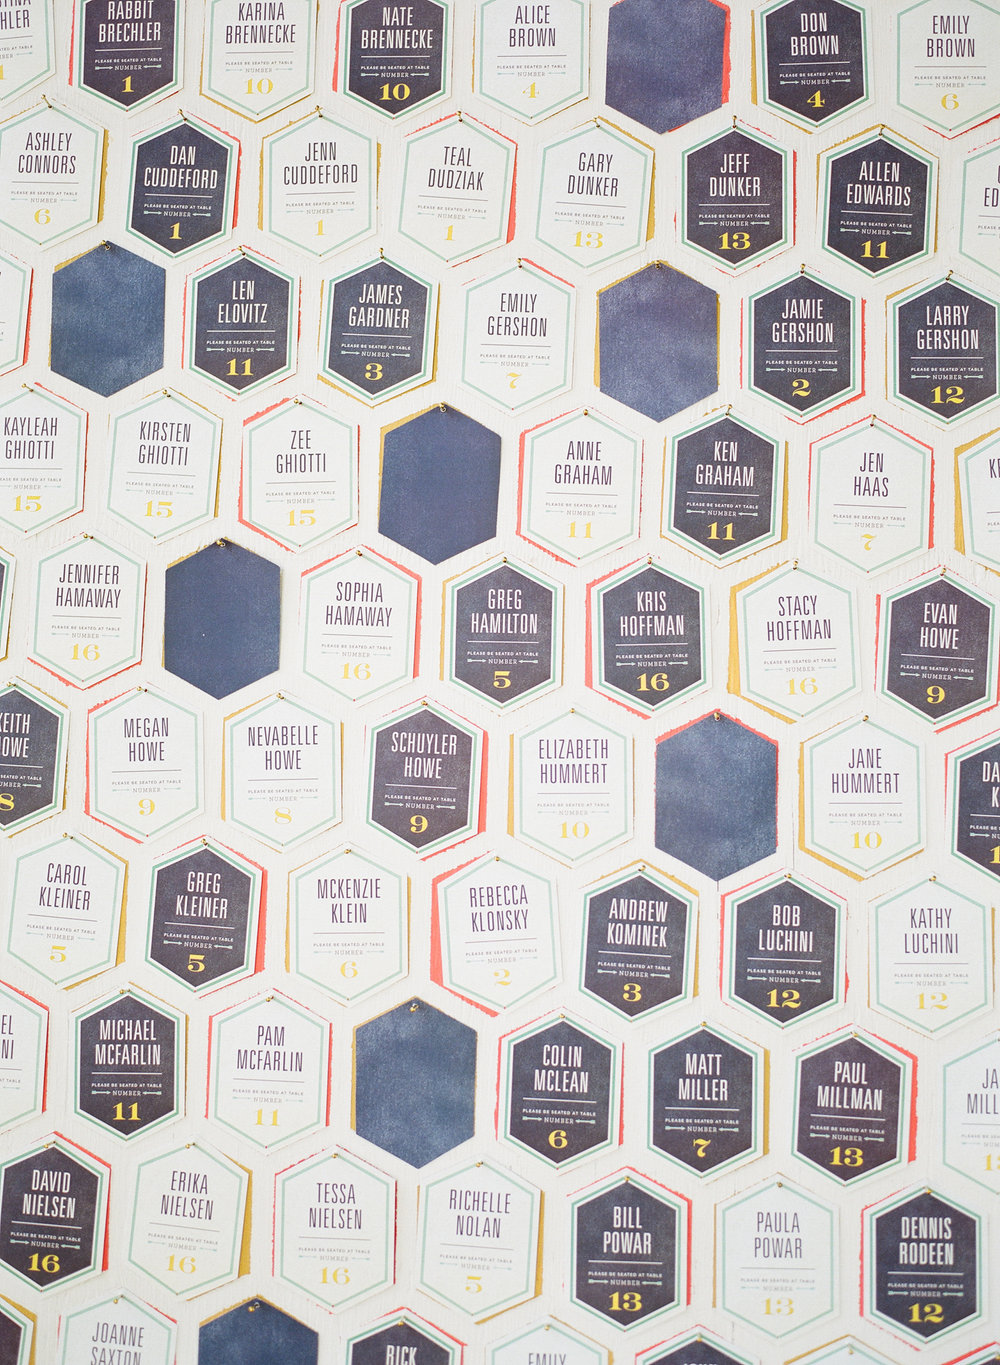 37-hexagon-escort-card-display.jpg